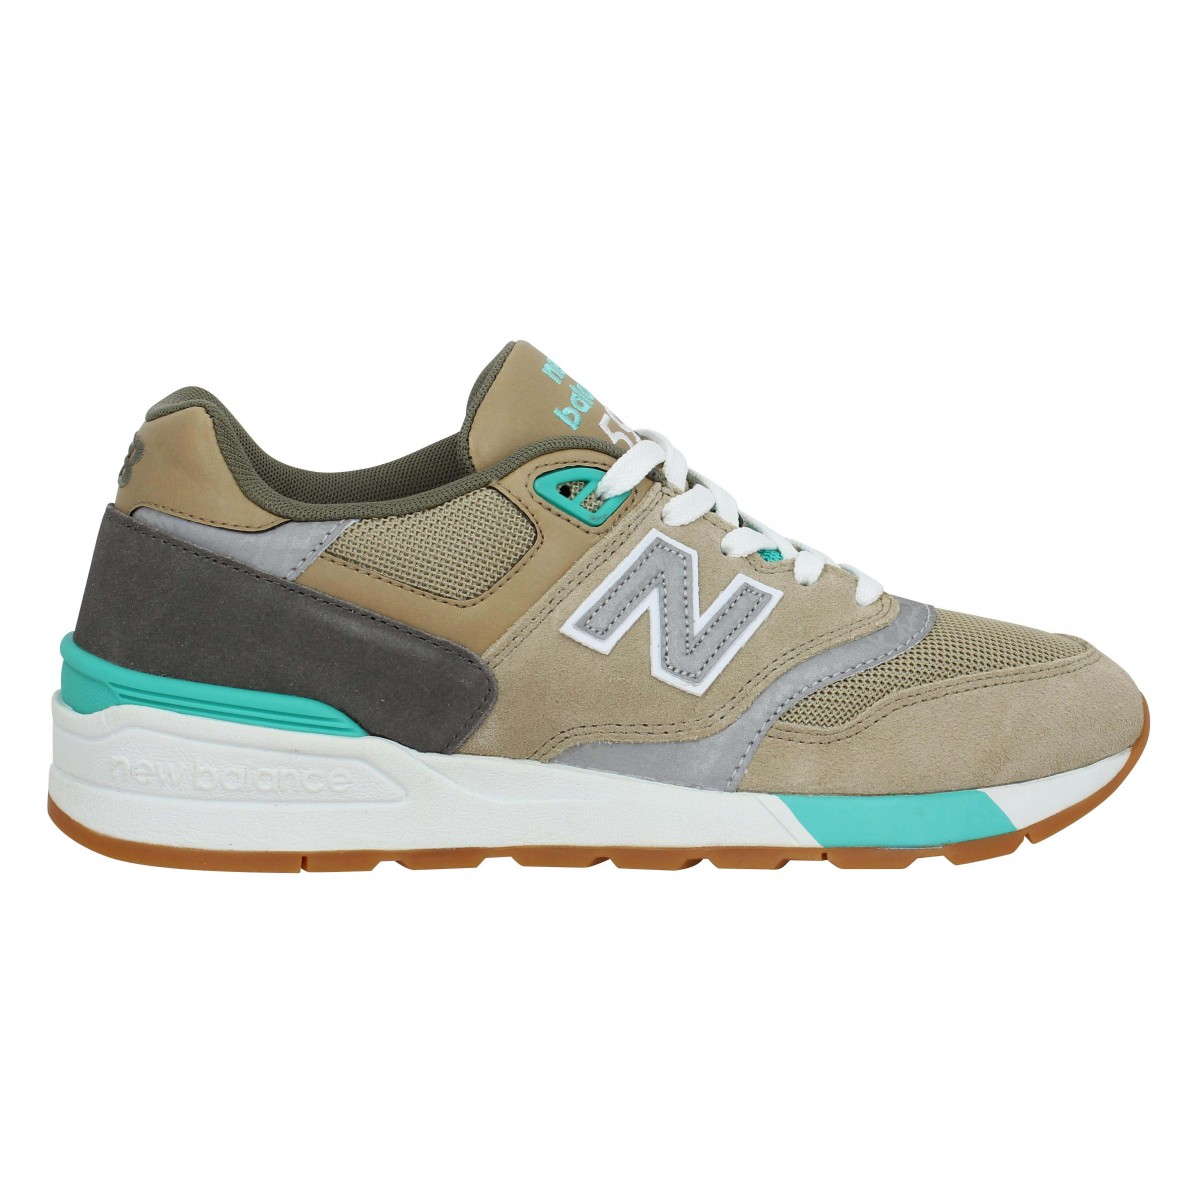 New balance 597 velours homme olive homme | Fanny chaussures